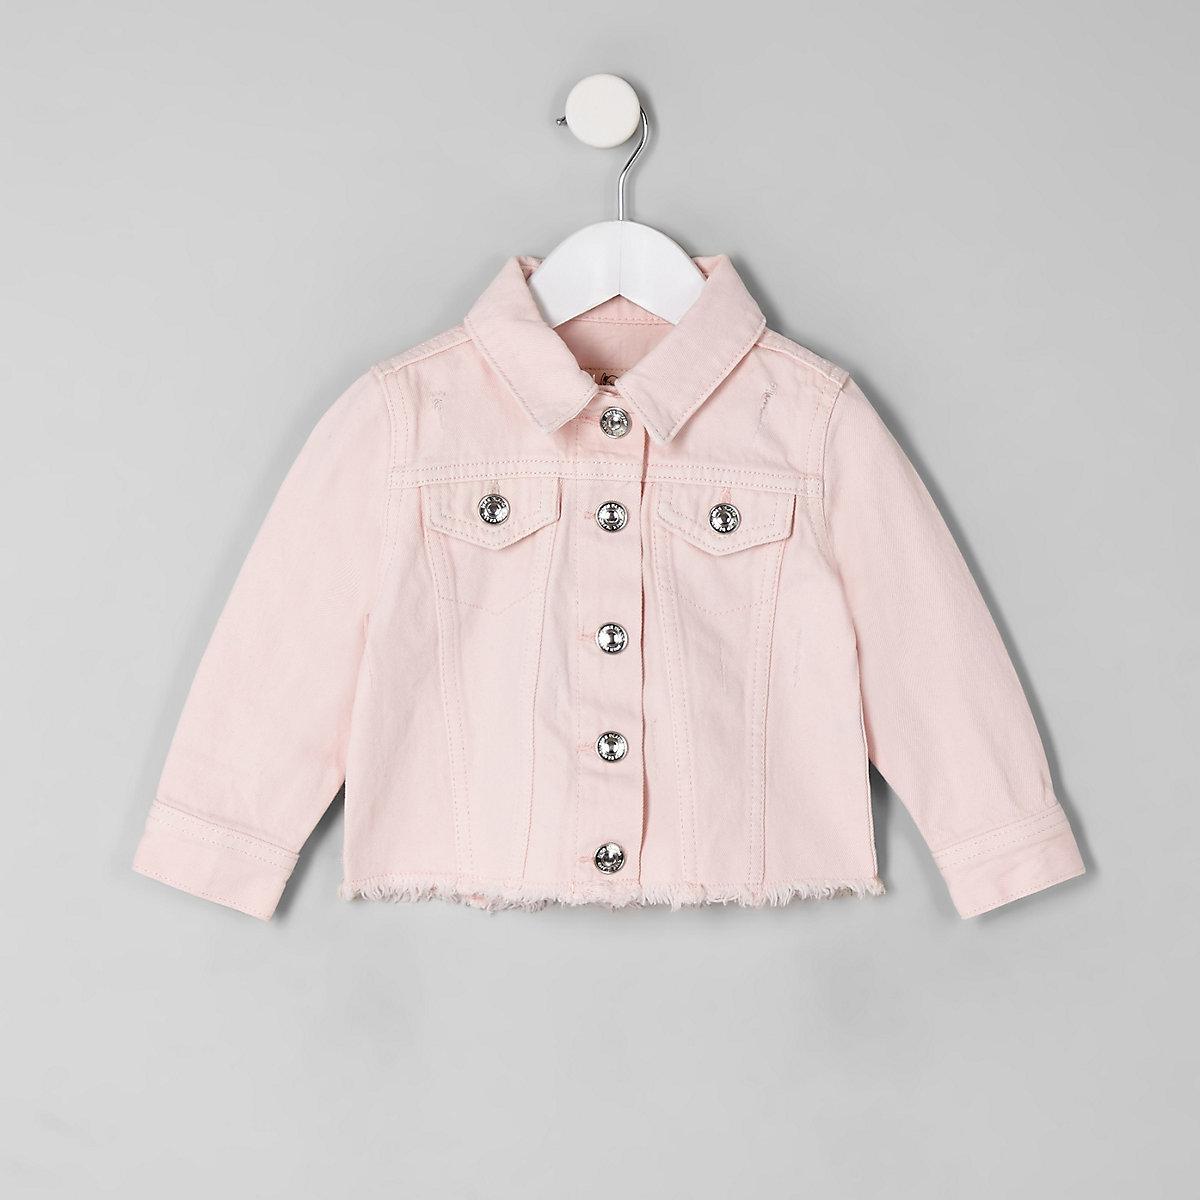 bbbfc8884 Mini girls pink fray hem denim jacket - Baby Girls Coats   Jackets ...